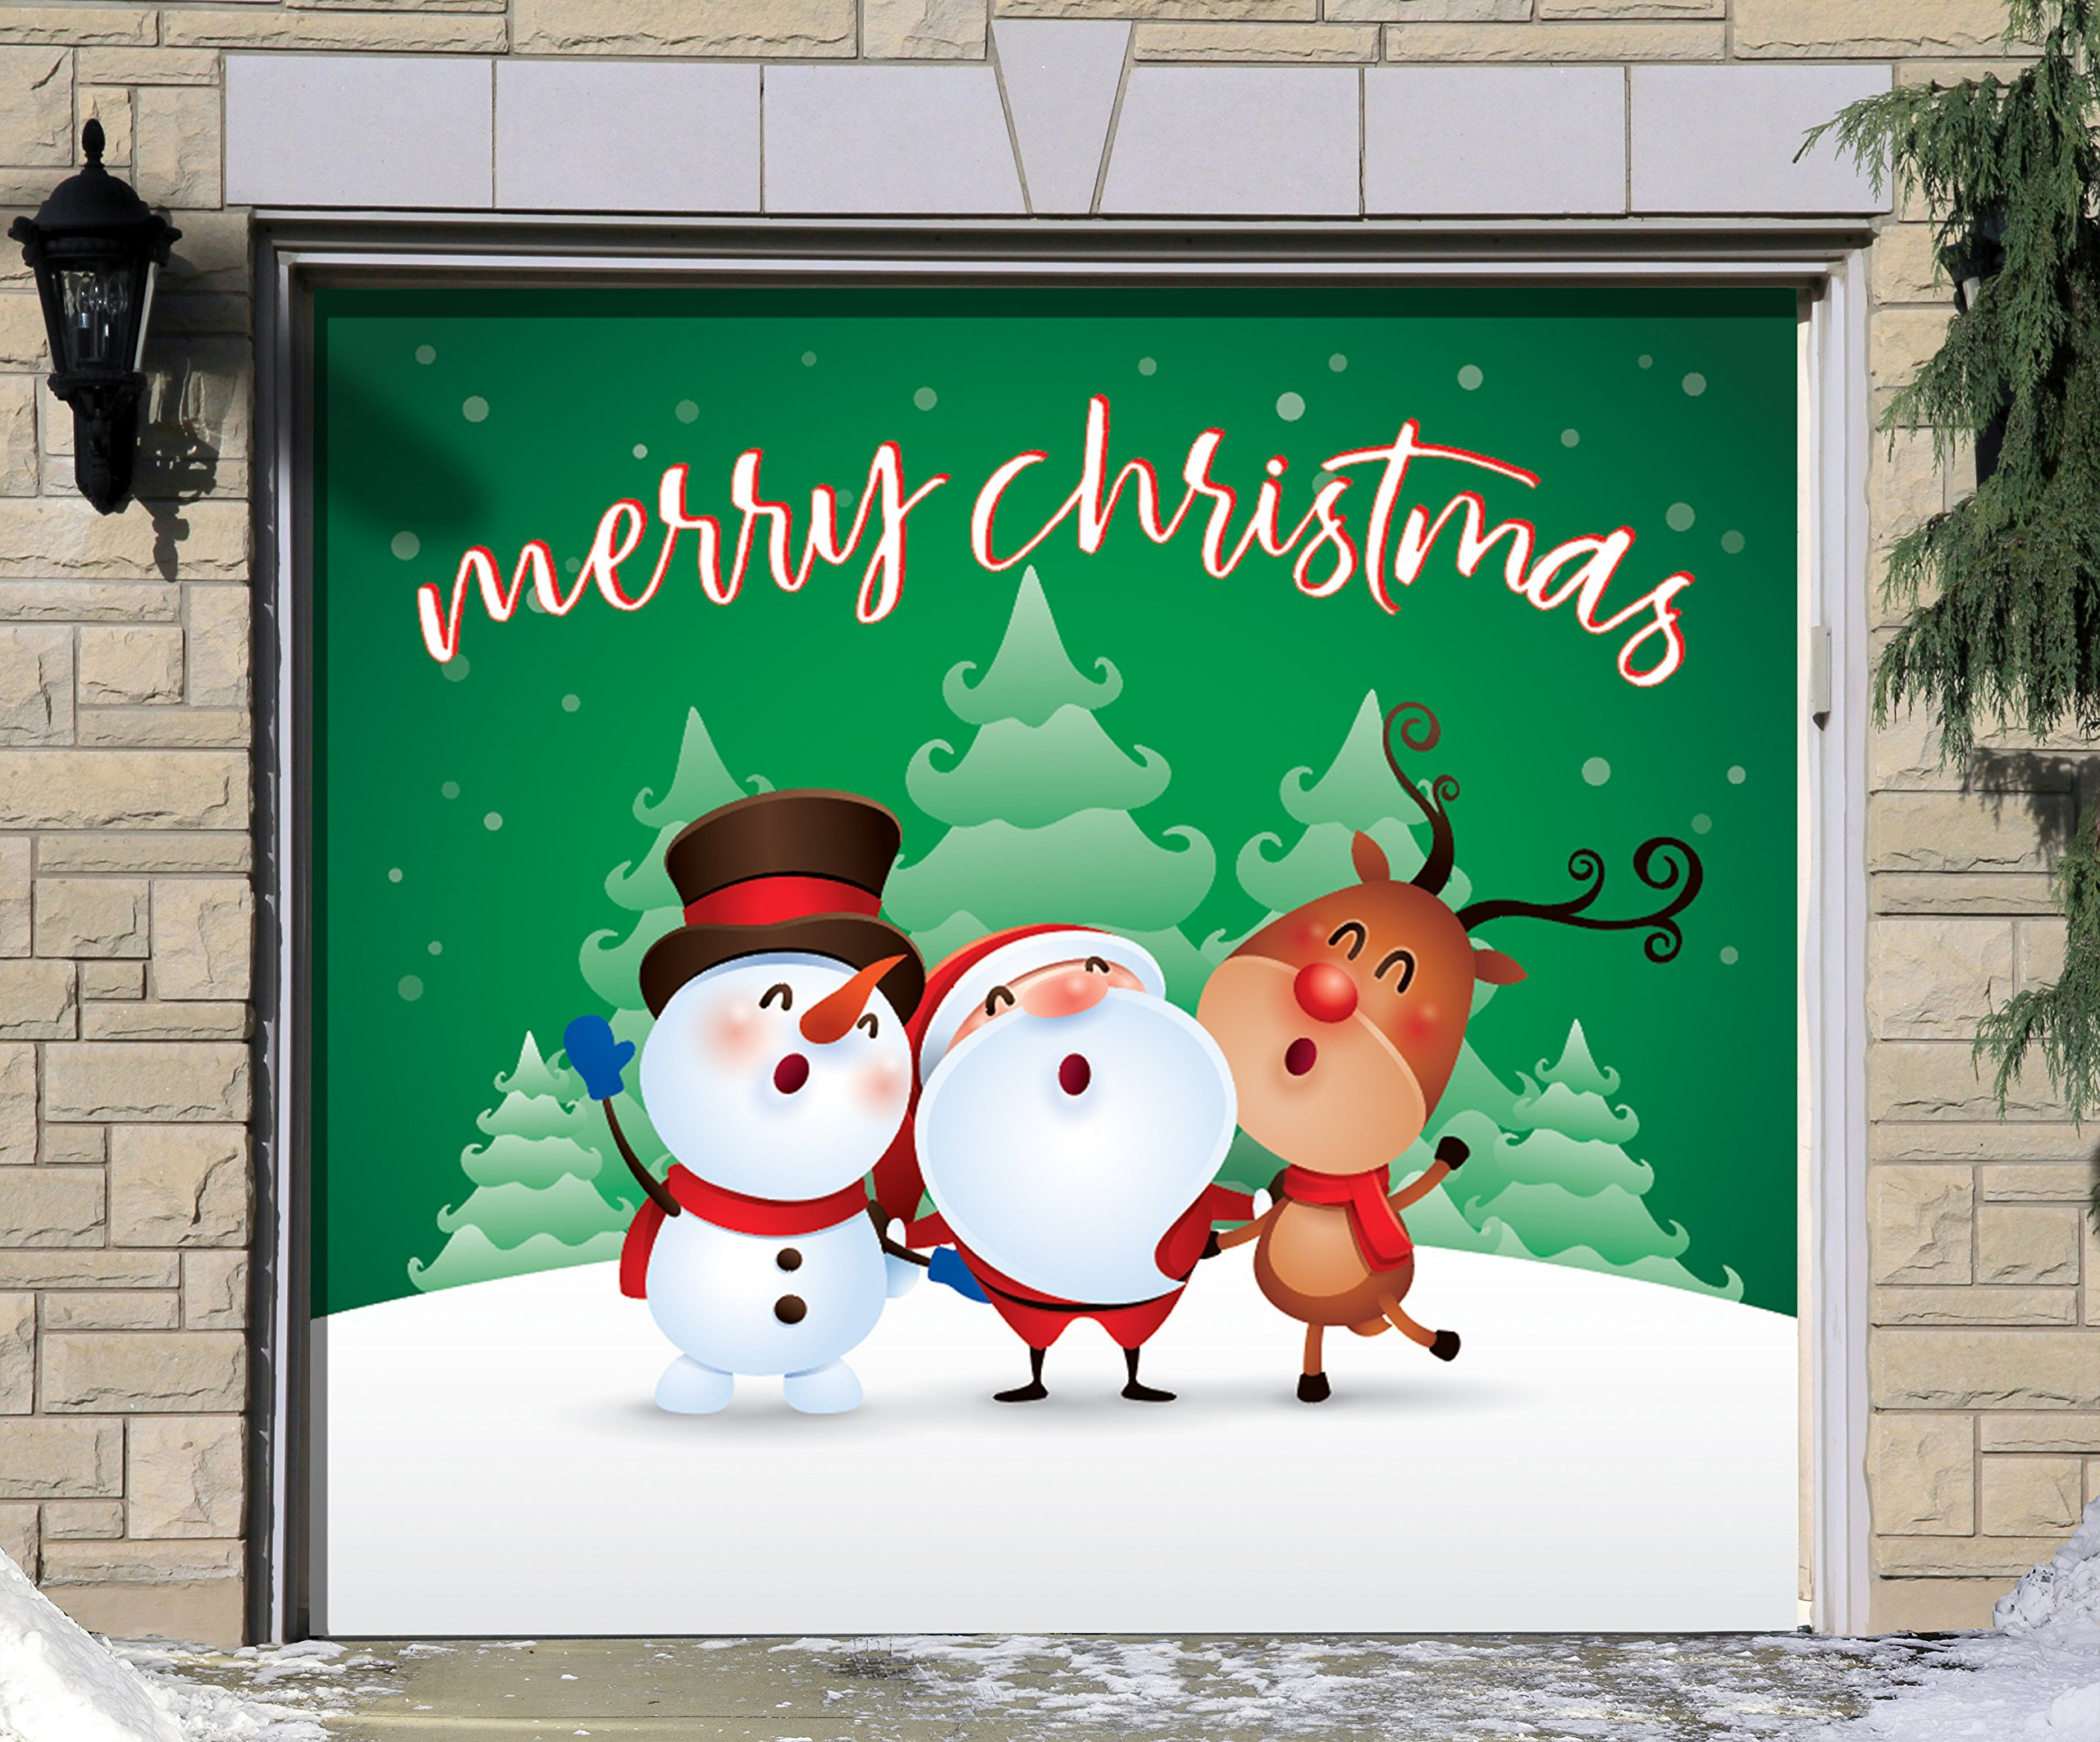 Victory Corps Outdoor Christmas Holiday Garage Door Banner Cover Mural Décoration - Christmas Characters Merry Christmas Winter - Outdoor Christmas Holiday Garage Door Banner Décor Sign 7'x8'